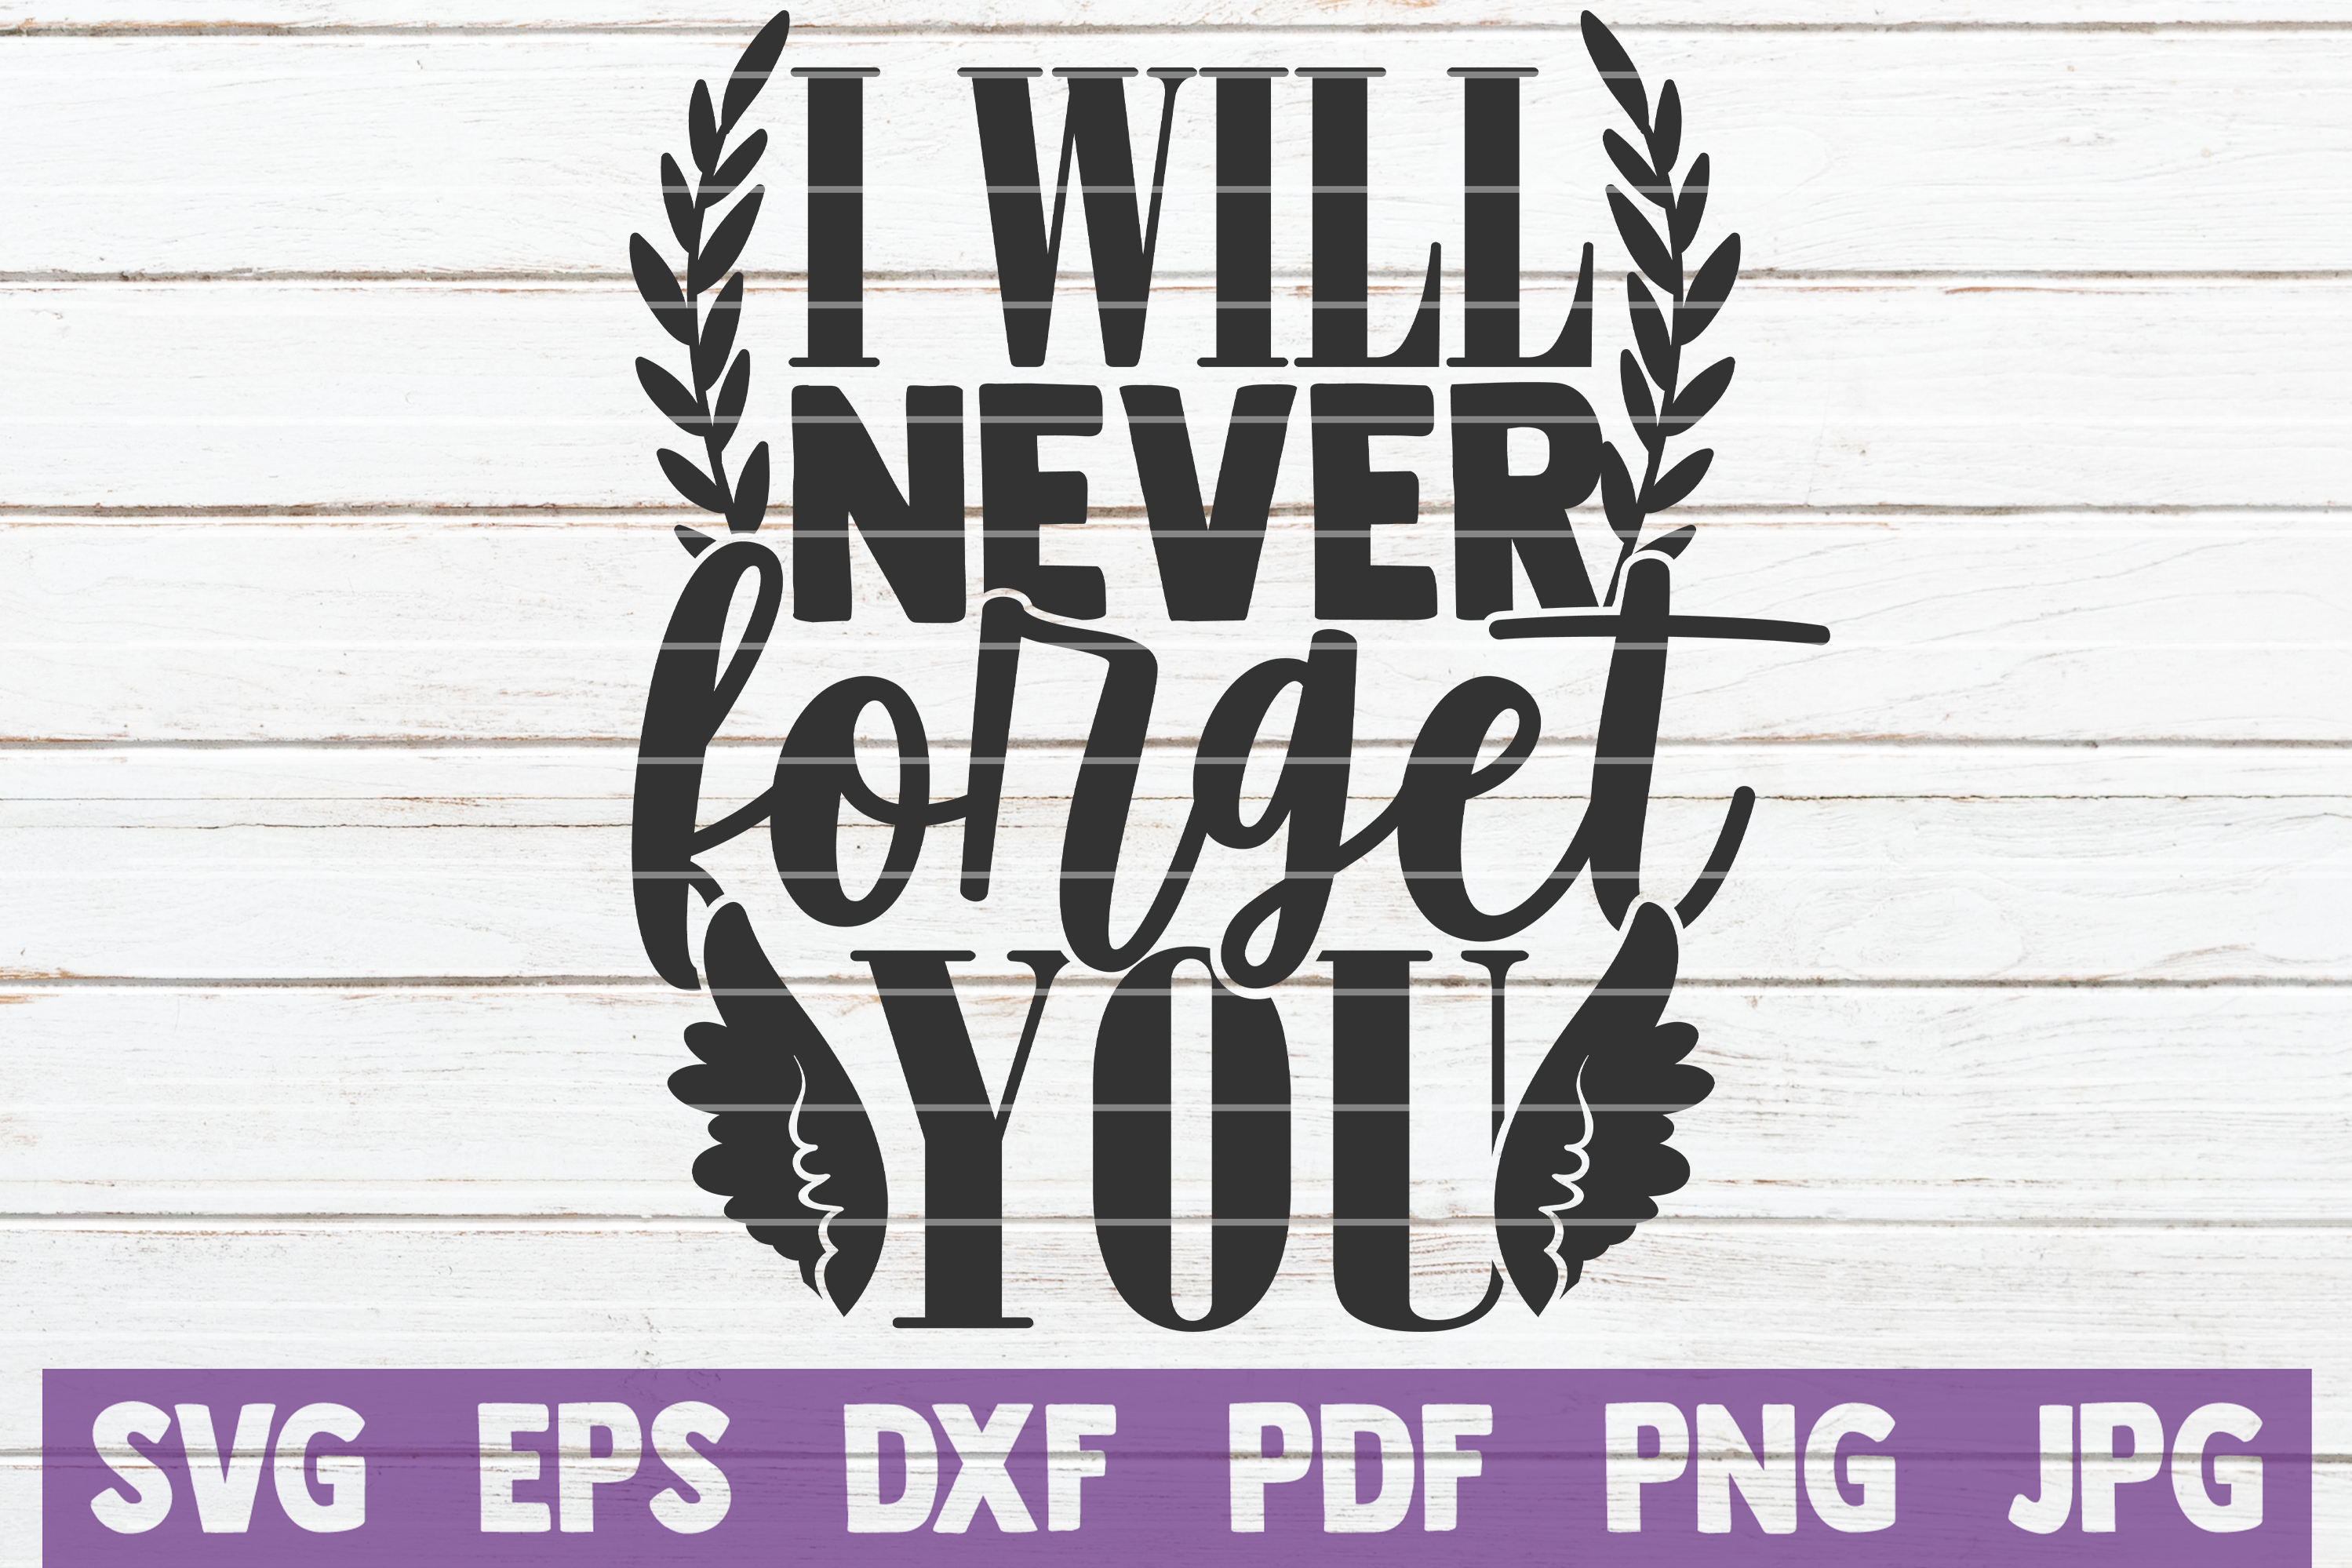 Download Free I Will Never Forget You Graphic By Mintymarshmallows Creative for Cricut Explore, Silhouette and other cutting machines.